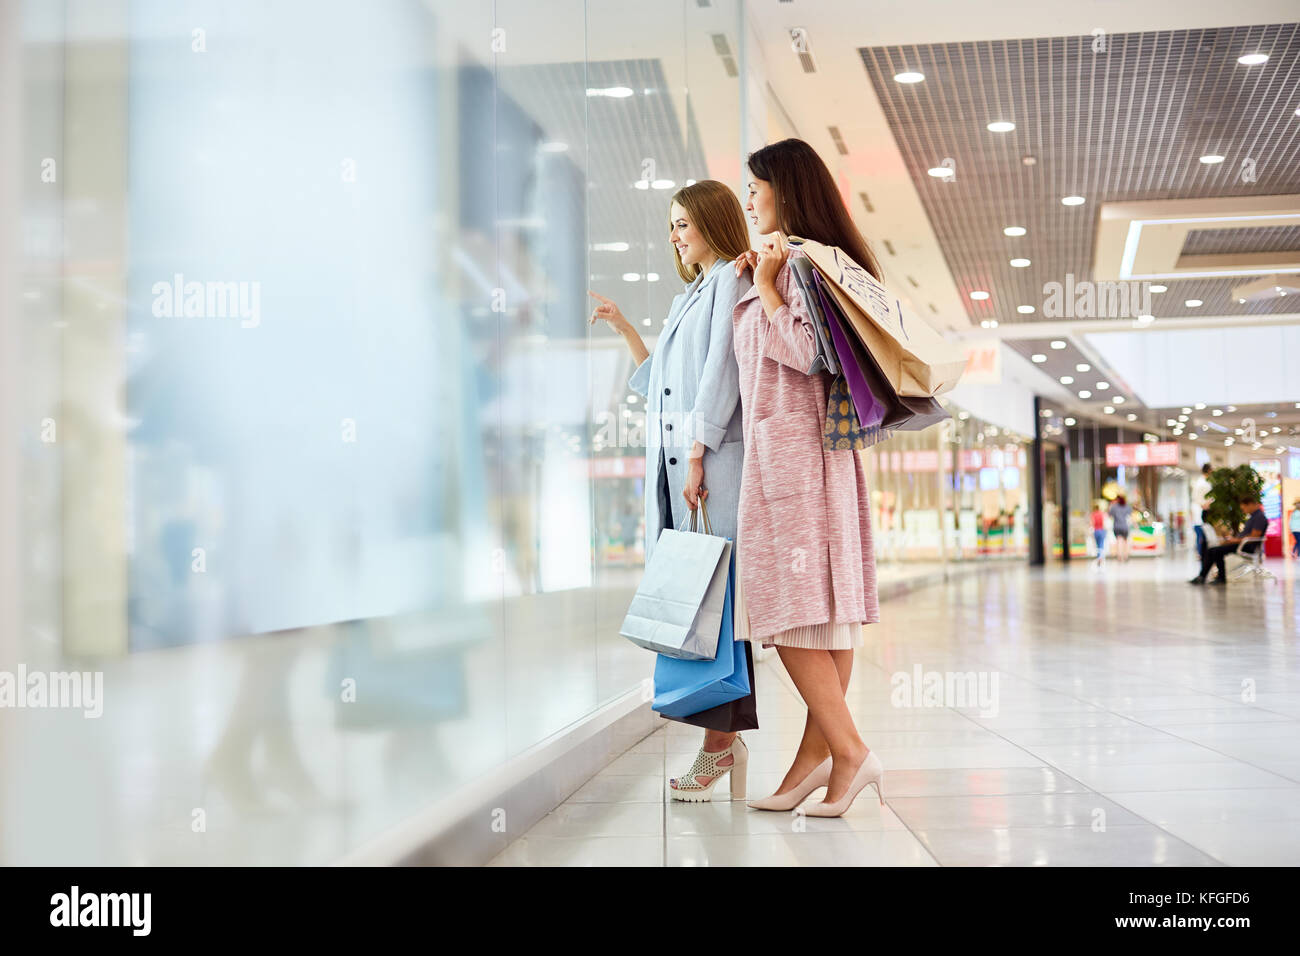 Two Girls Window Shopping in Mall - Stock Image